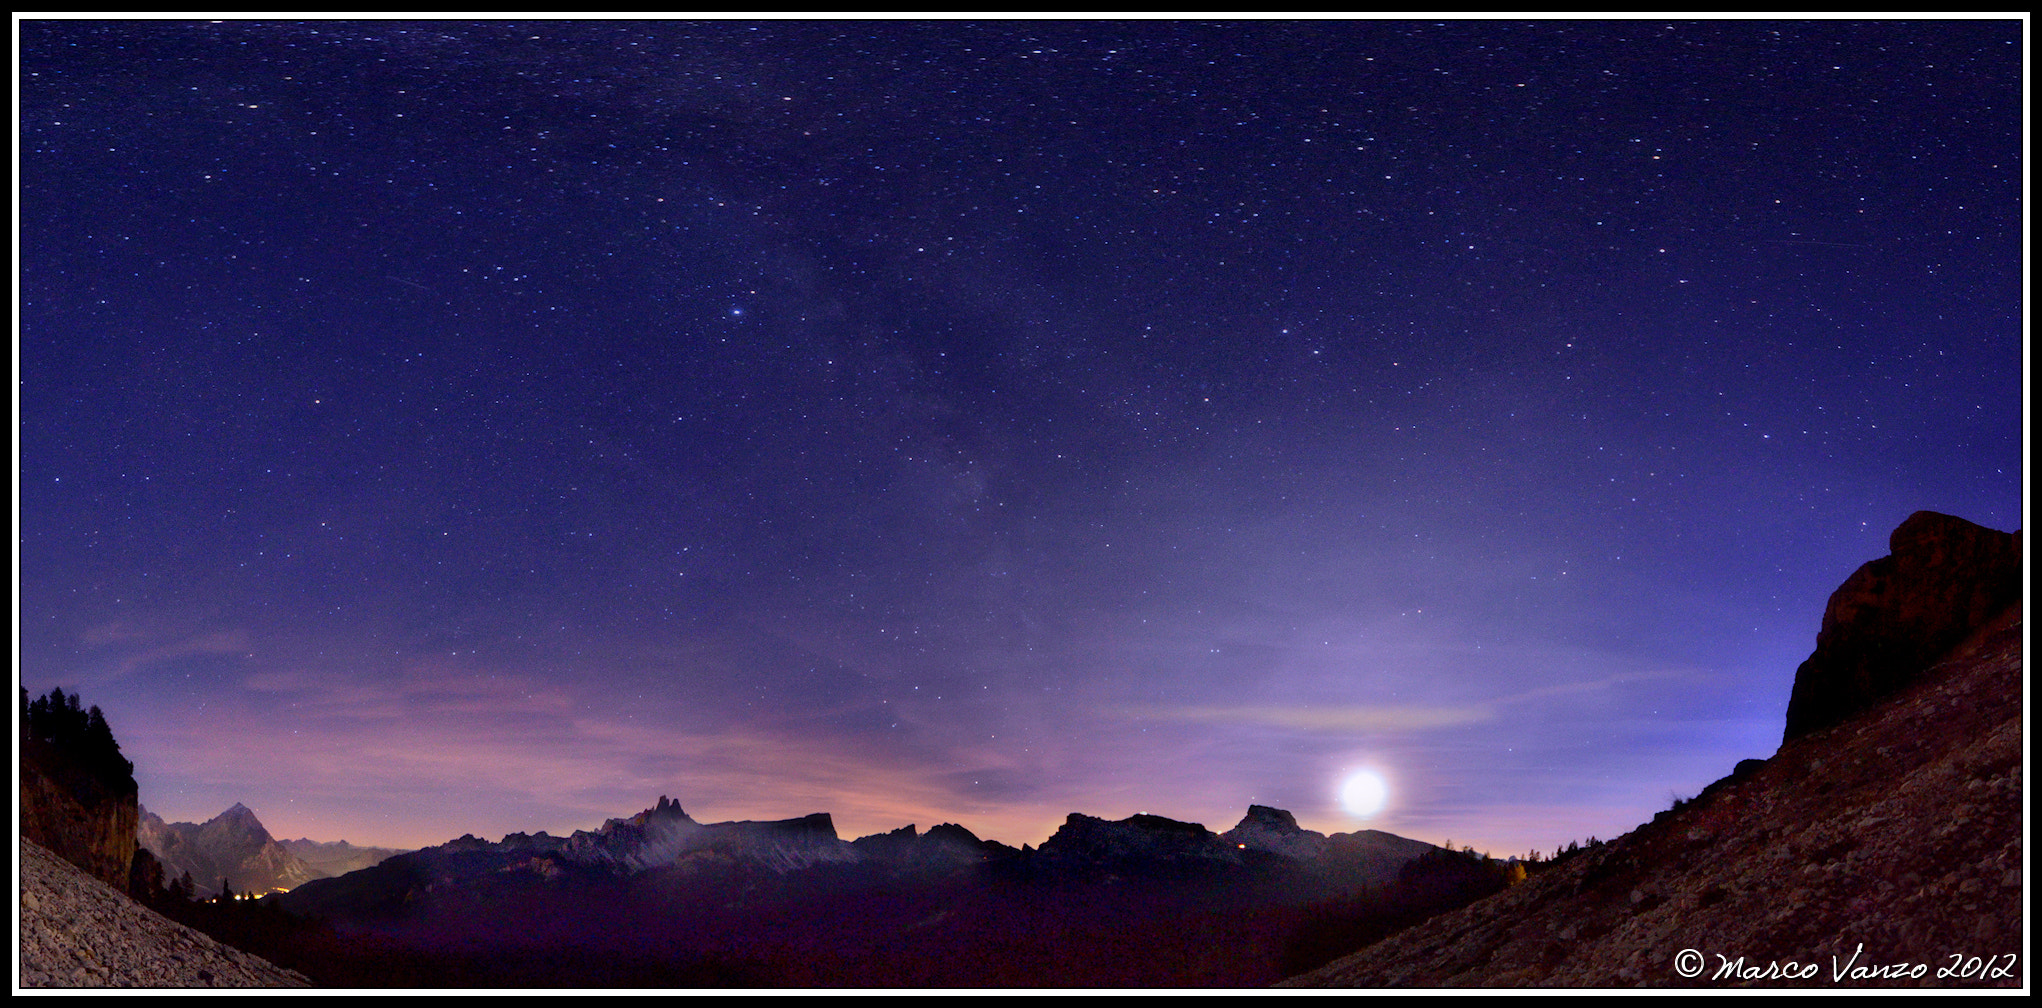 Photograph moon light by Marco Vanzo on 500px